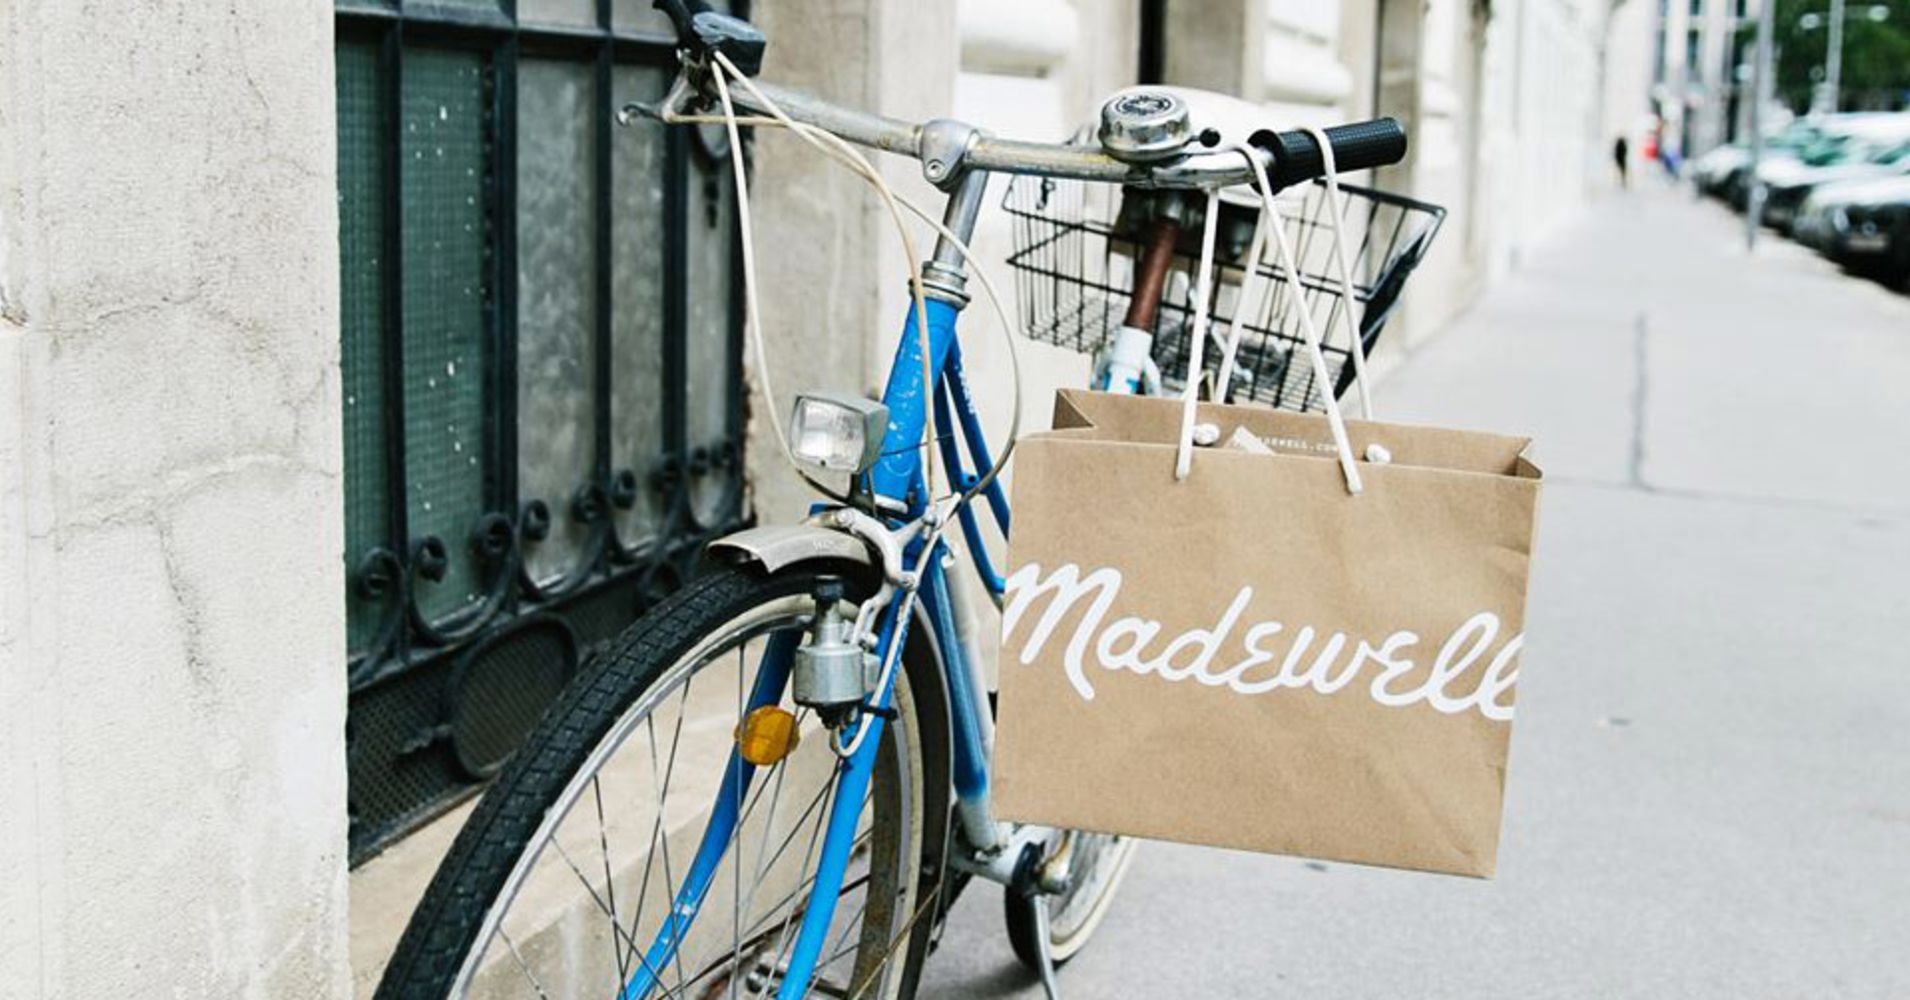 J. Crew is considering an IPO for its Madewell clothing brand